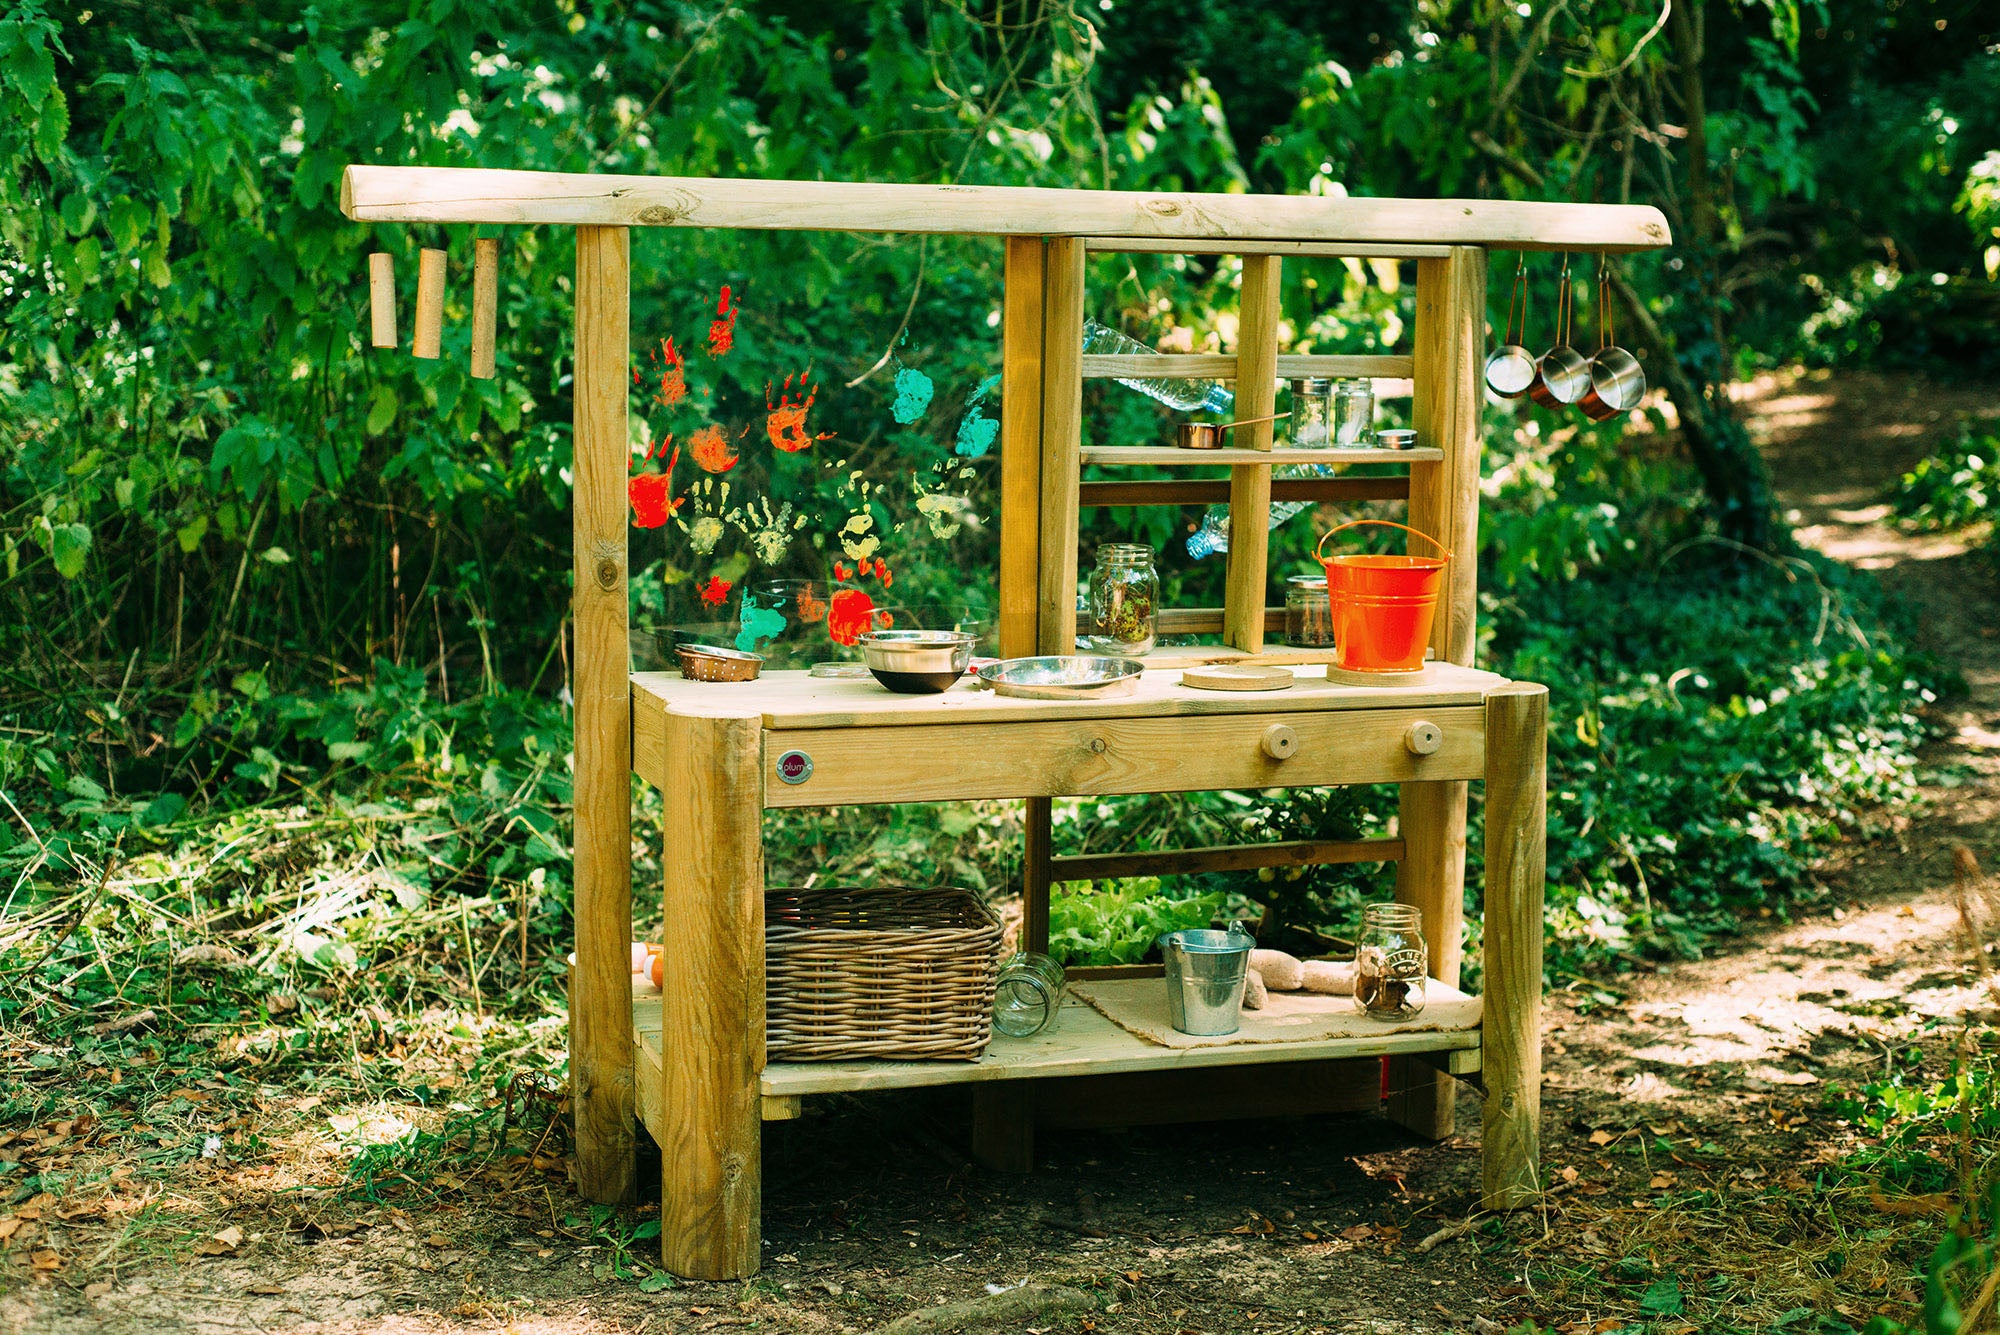 Wooden Outdoor Mud Kitchen with pots and pans